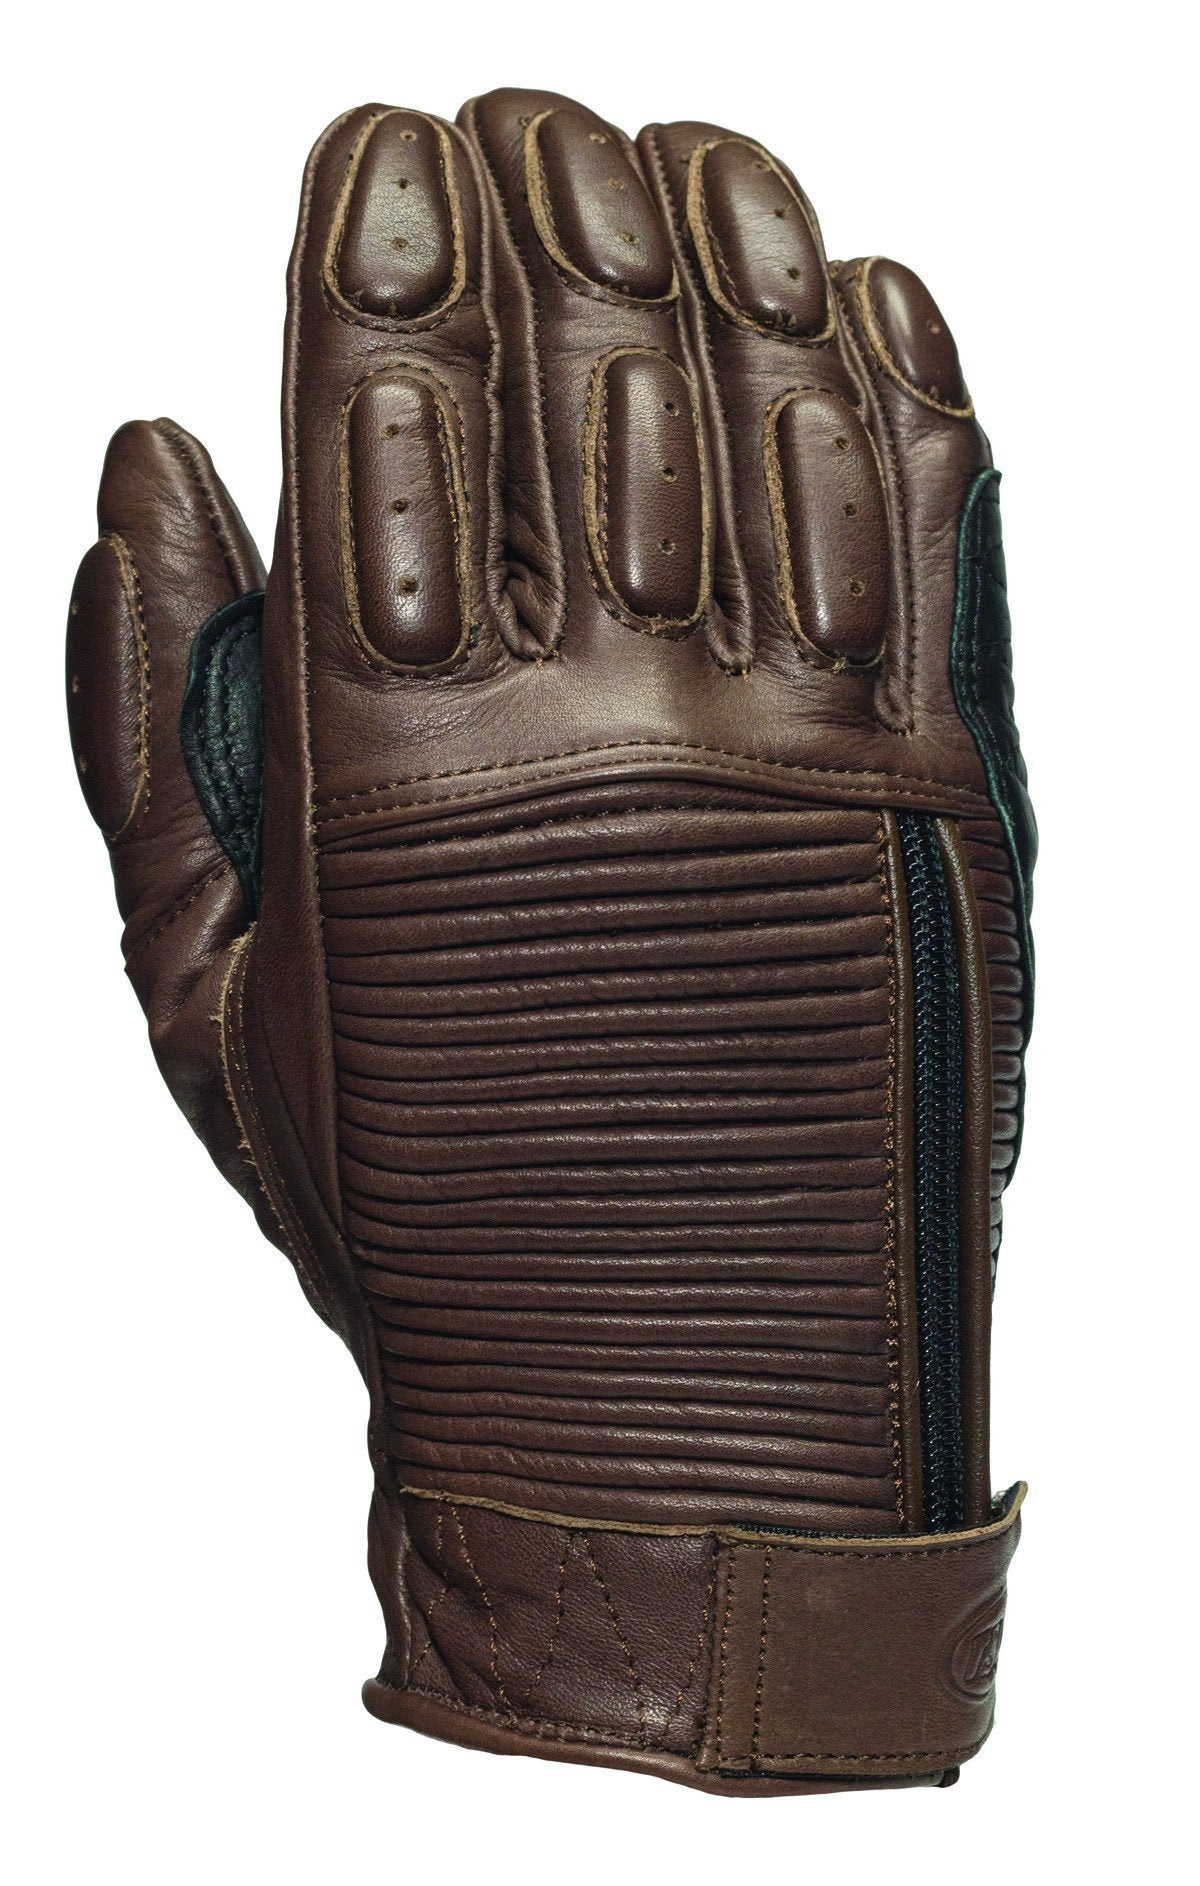 Roland Sands Design - Roland Sands Design Dezel (Diesel) Gloves - Tobacco - Gloves - Salt Flats Clothing